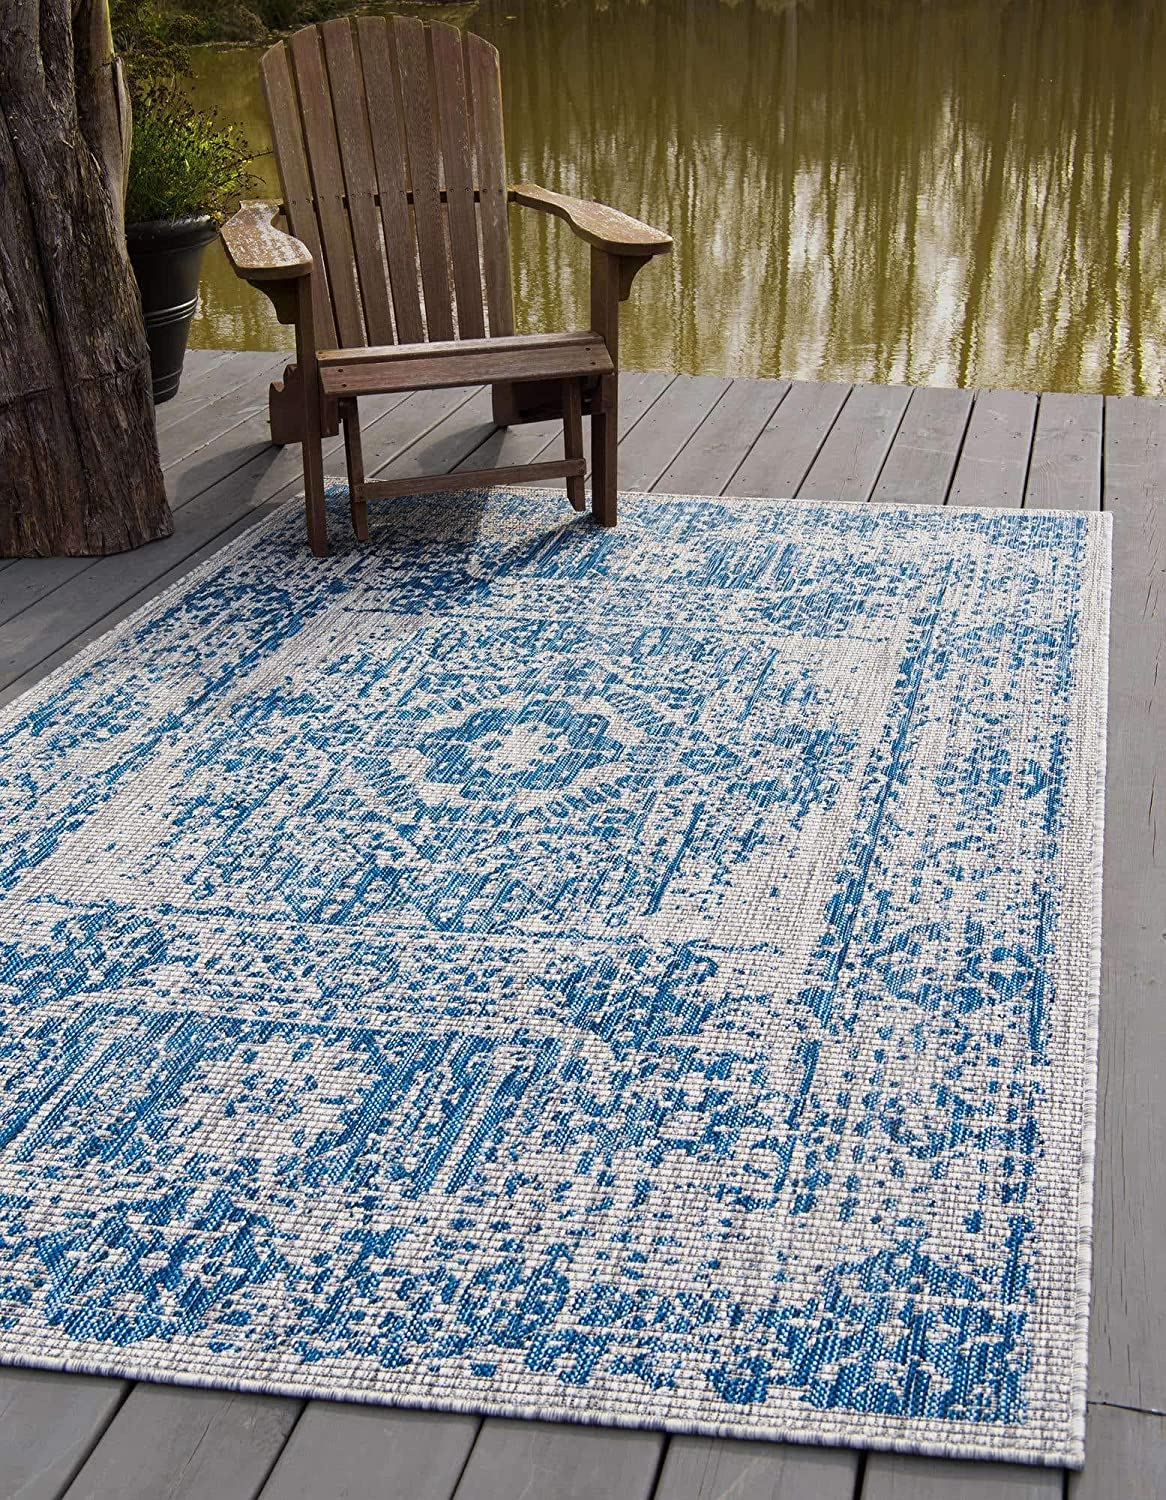 Unique Loom Traditional Distressed Vintage Medallion Transitional Indoor and Outdoor Flatweave Runner Rug_OTD002, 8 Feet x 11 Feet 4 Inch, Blue/Ivory